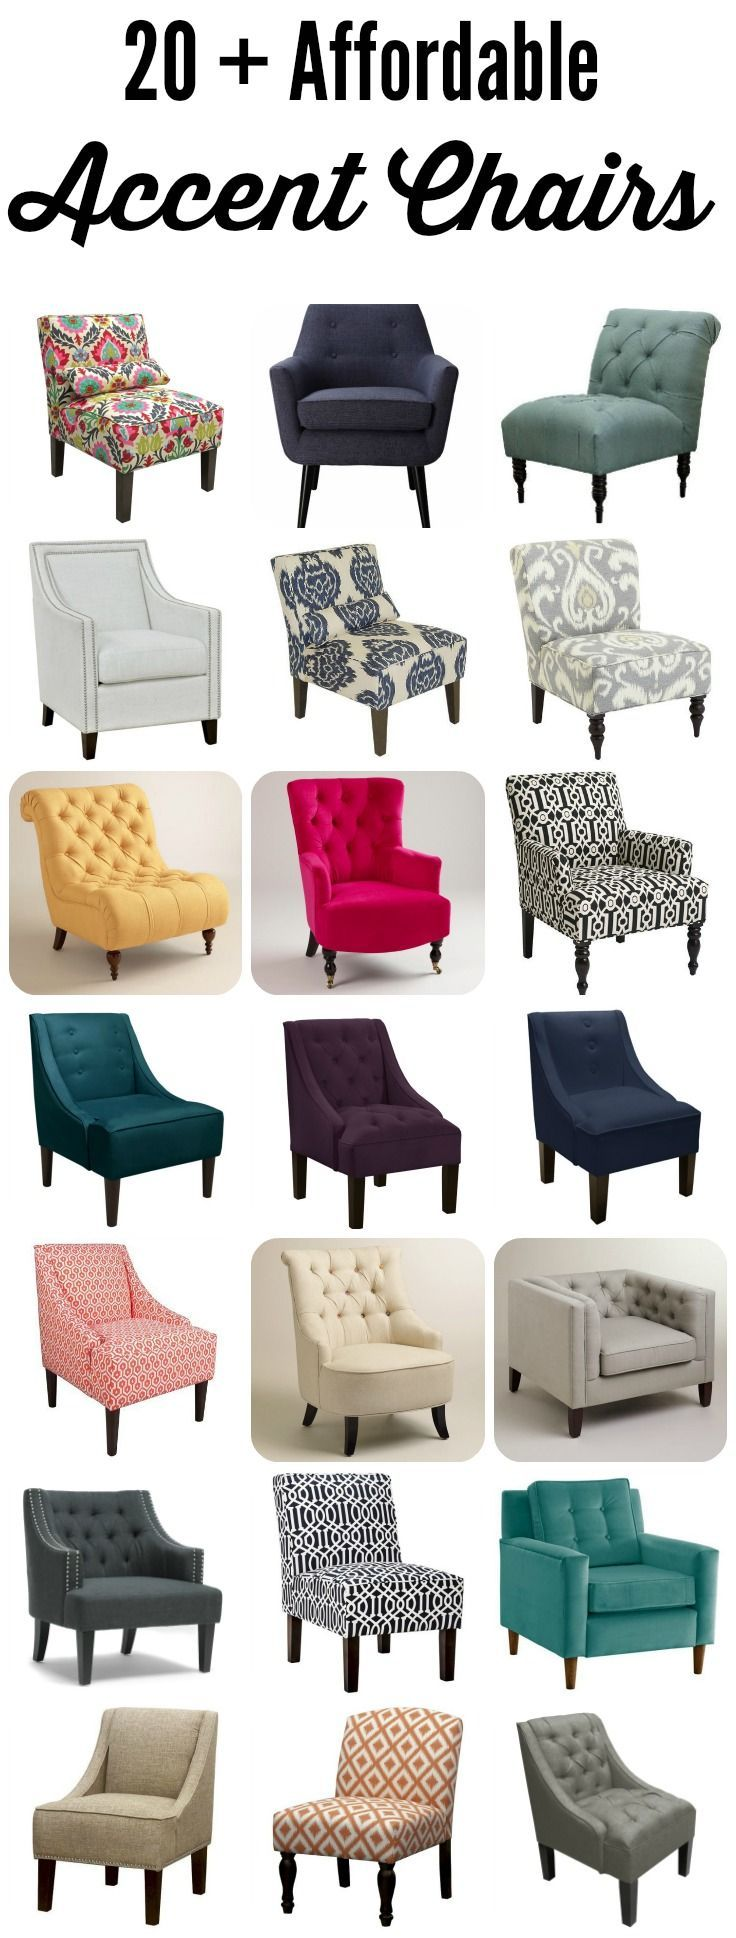 Best Sources For Affordable Accent Chairs. Living Room ... Part 34